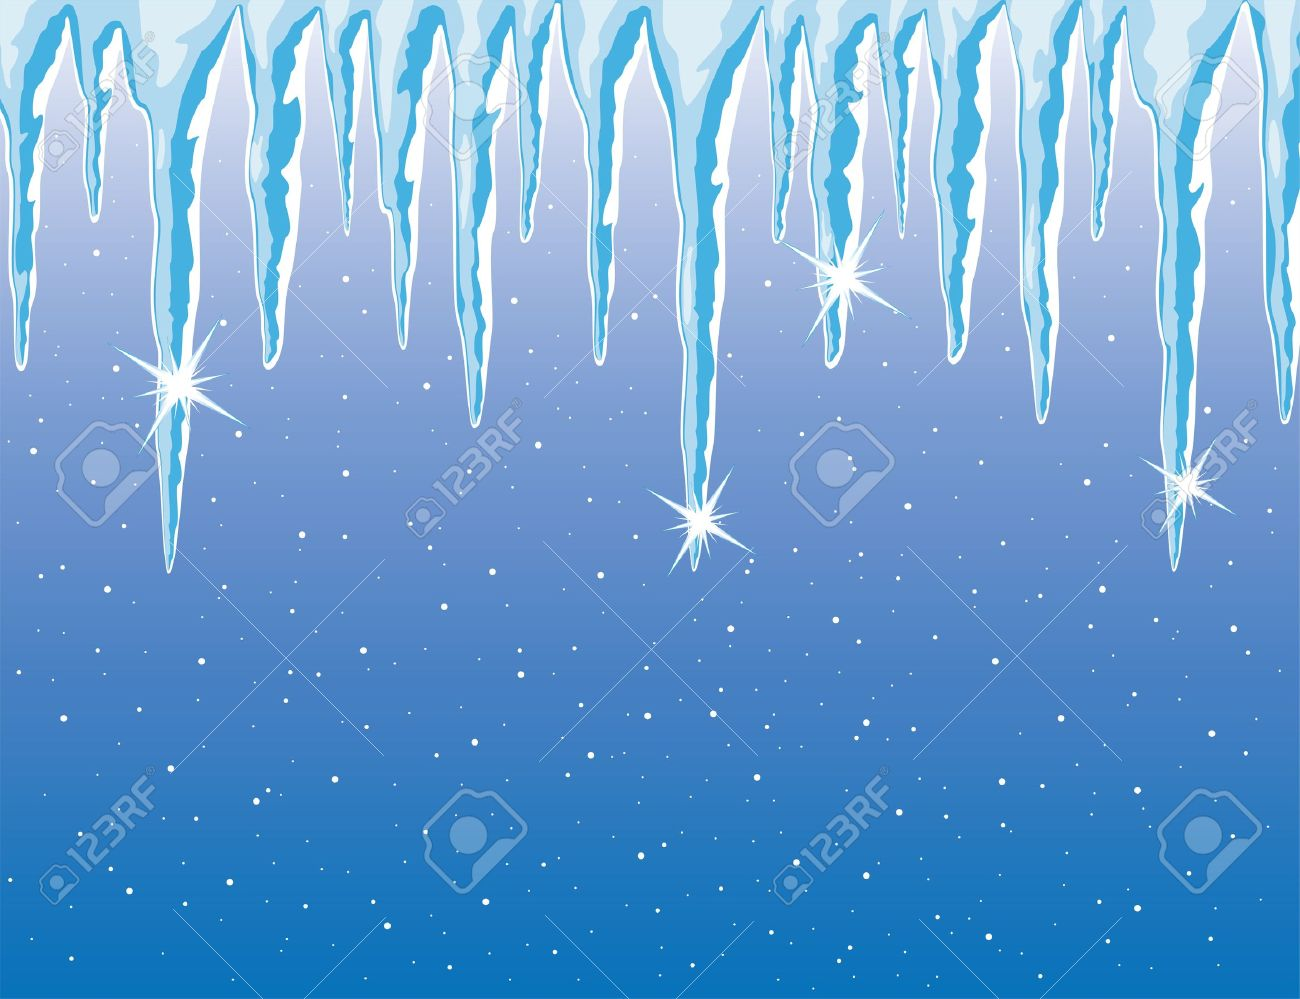 Icicles clipart blue snowflake. Icicle x free clip